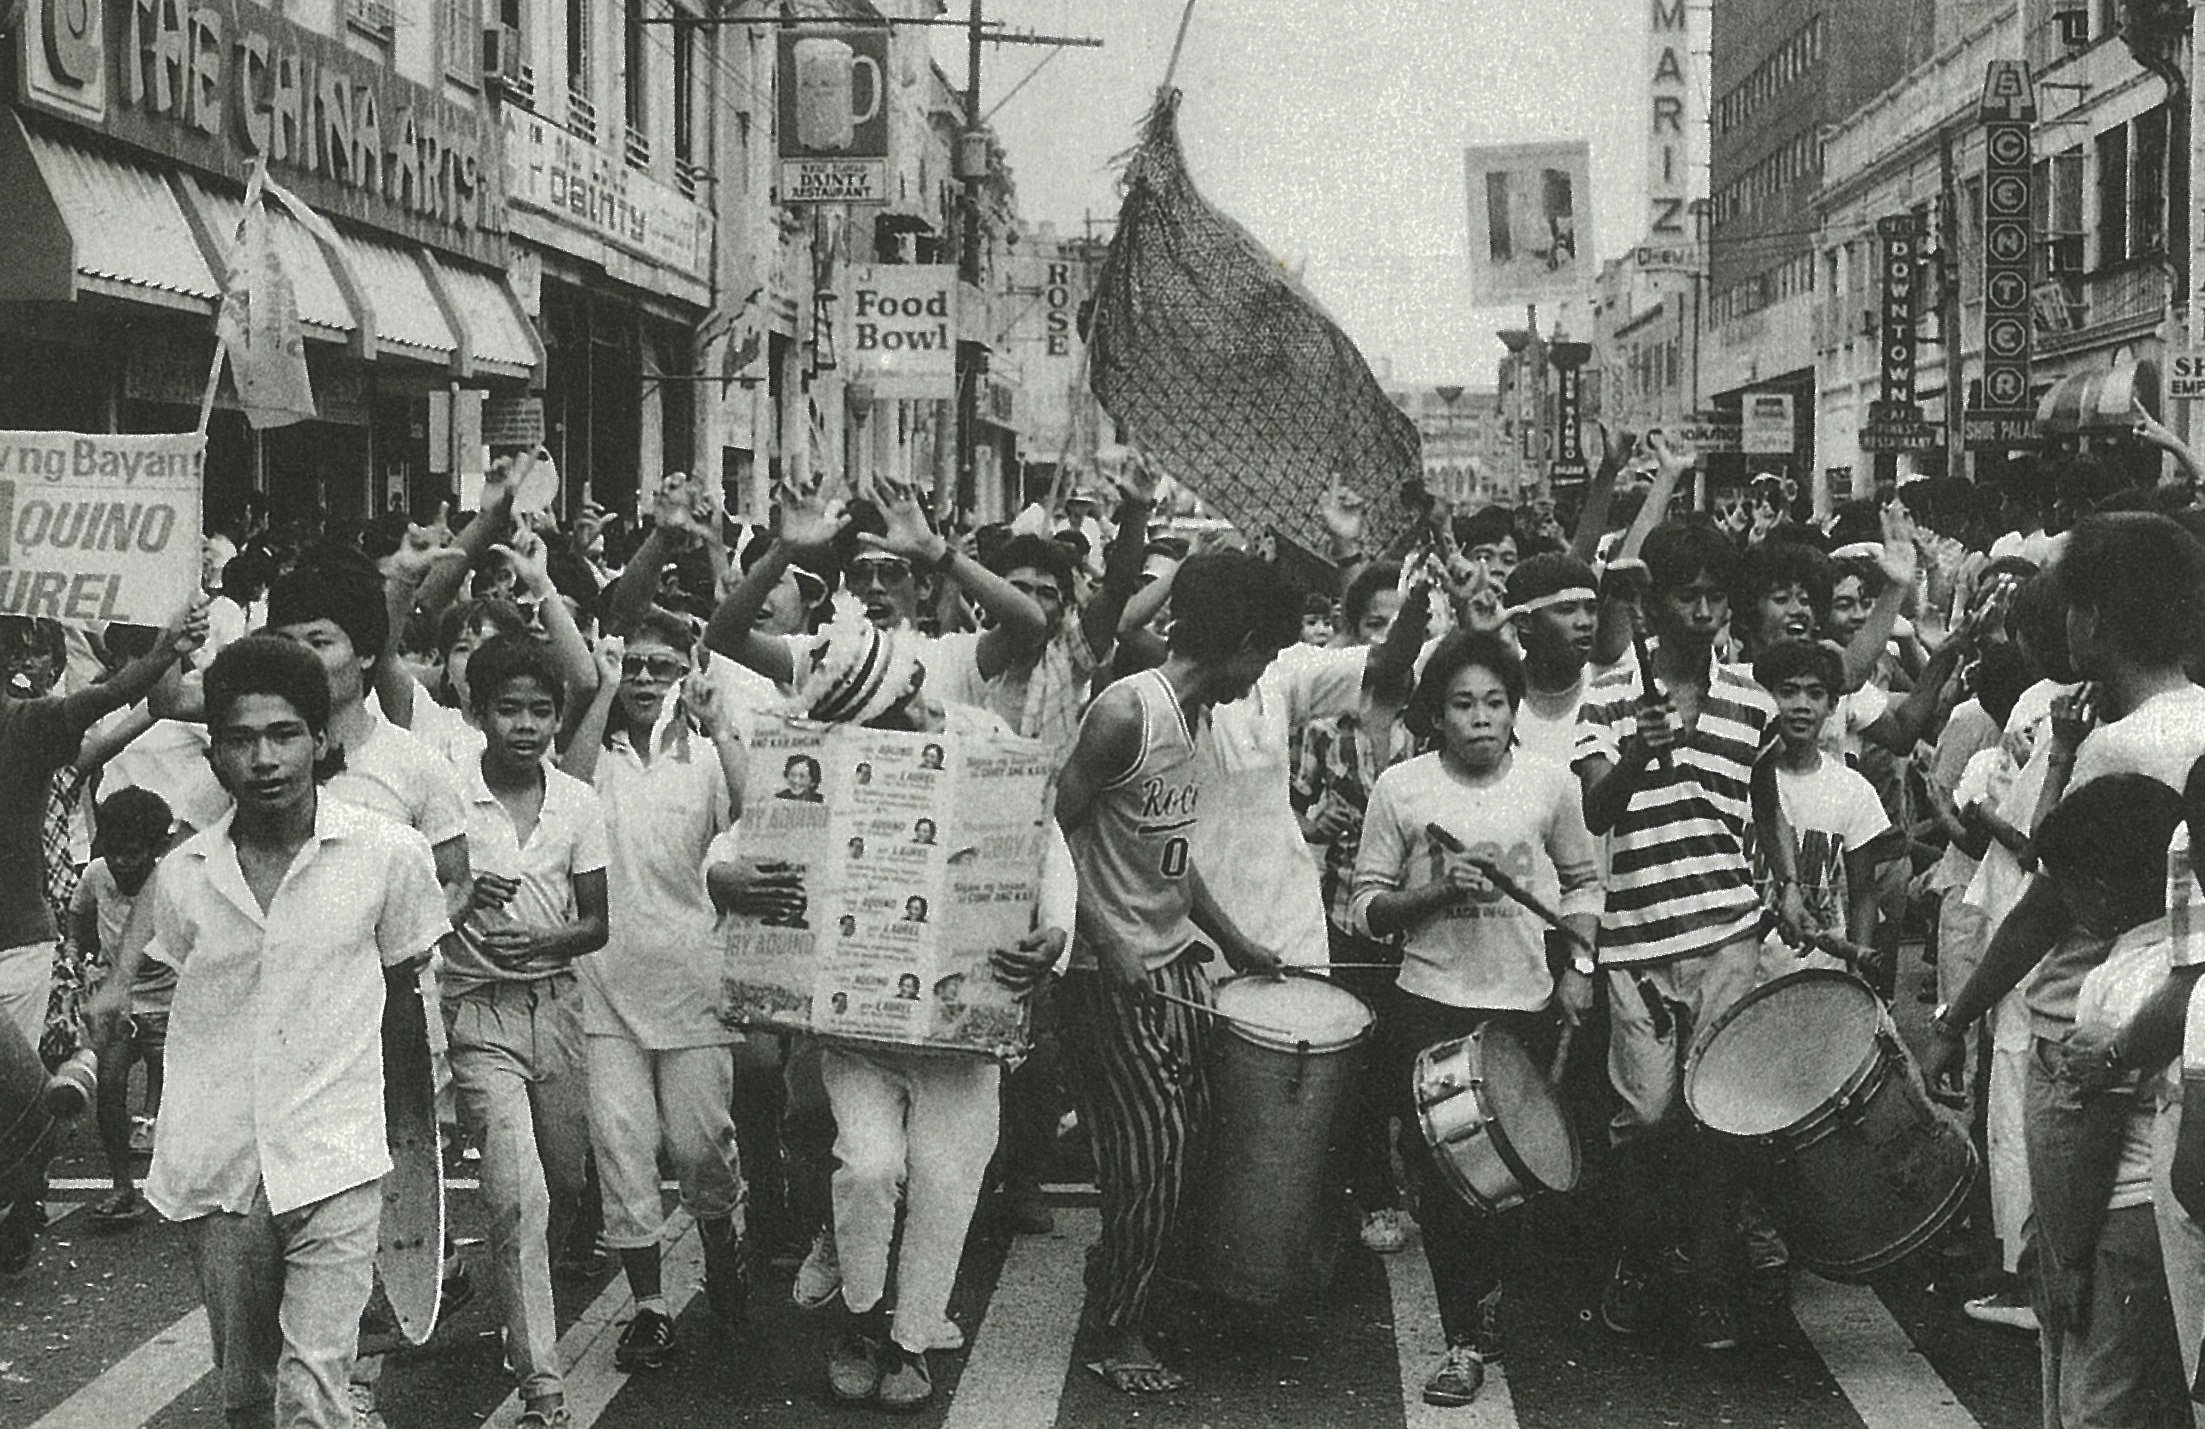 People marched during the People Power Revolution in 1986, also known as the EDSA Revolution.